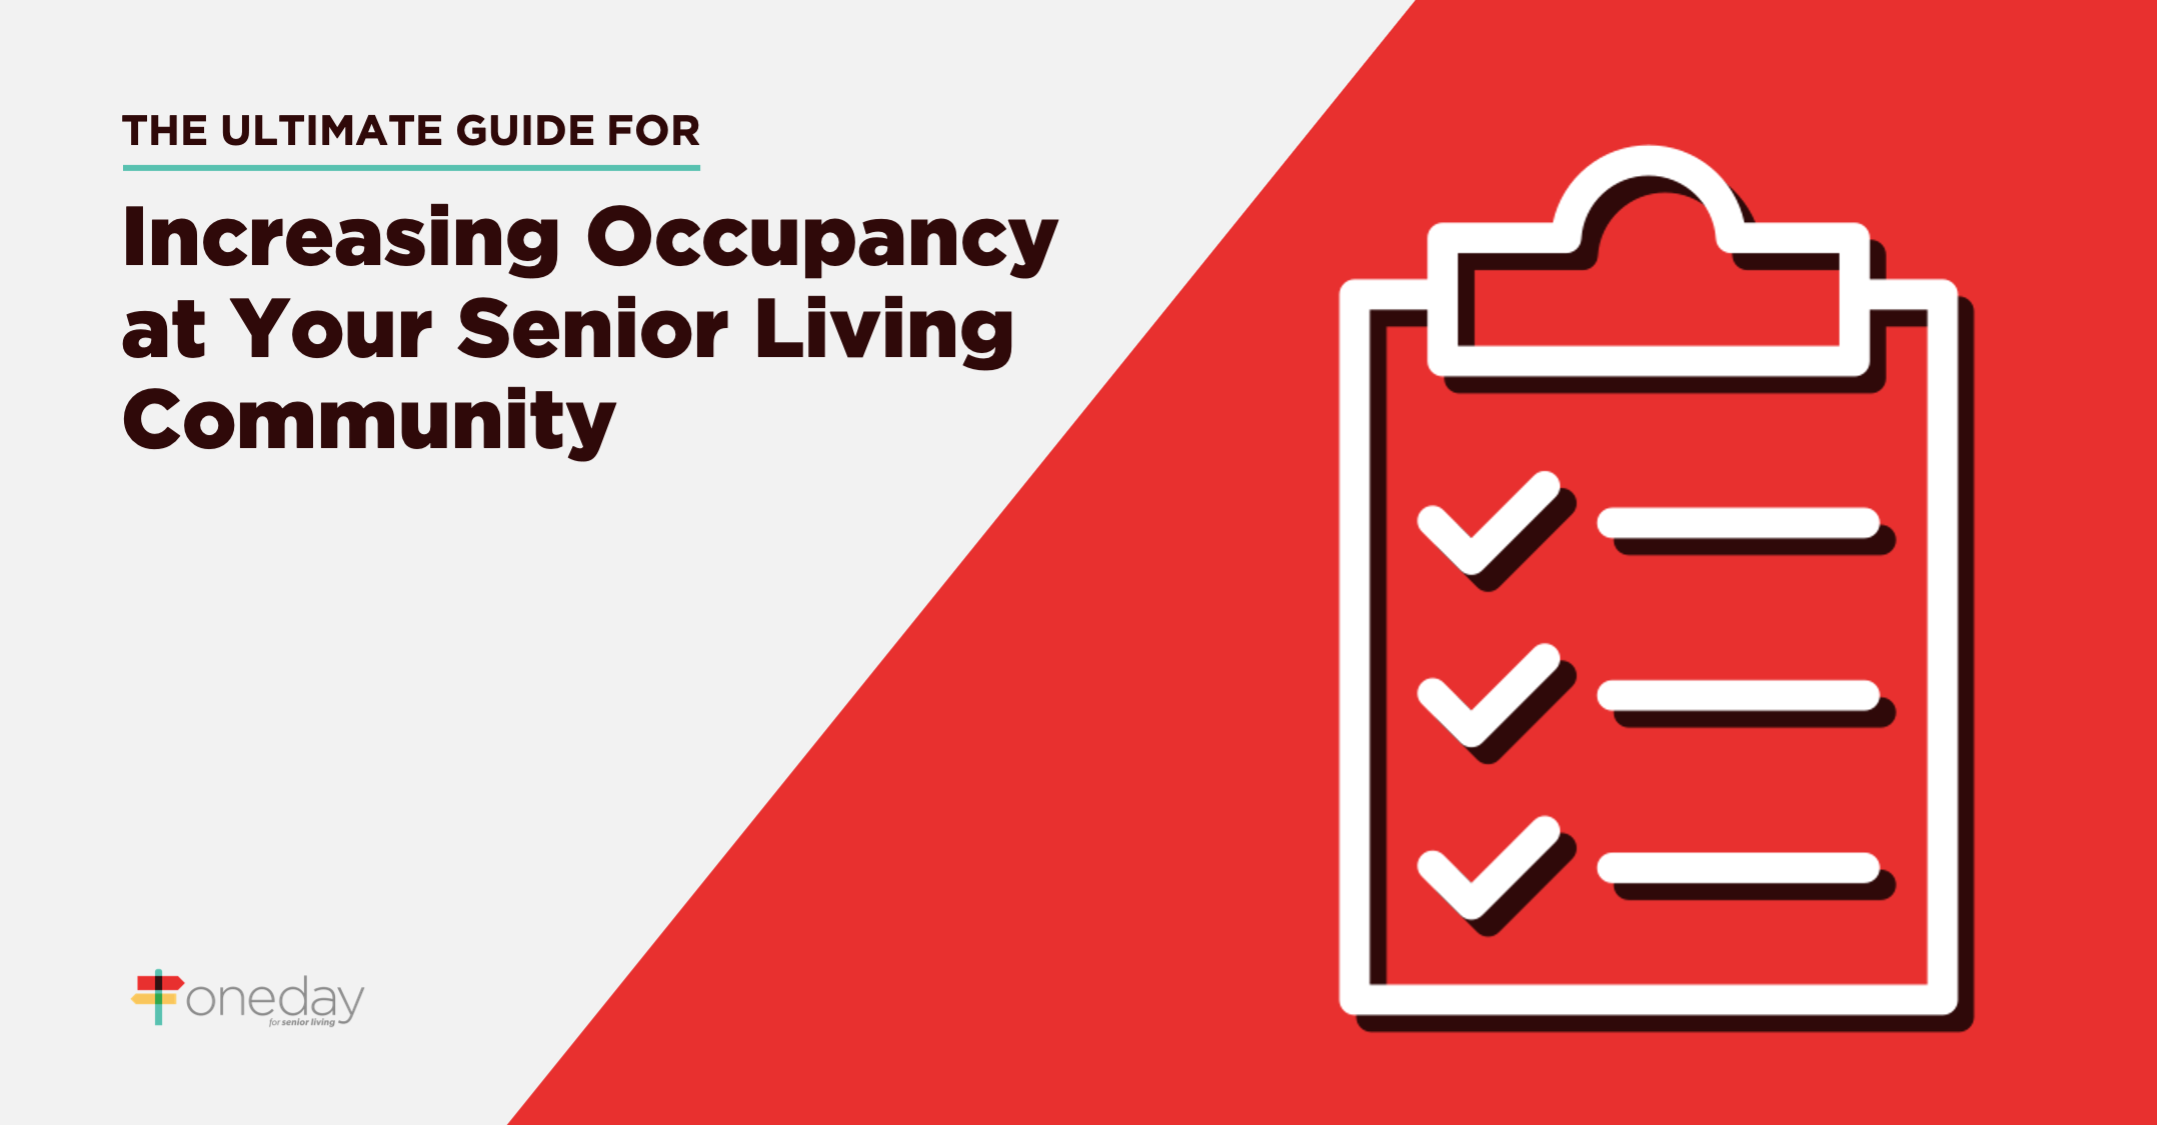 The most comprehensive guide on the internet focused exclusively on the different ways  senior living communities can drive occupancy rates to new heights.